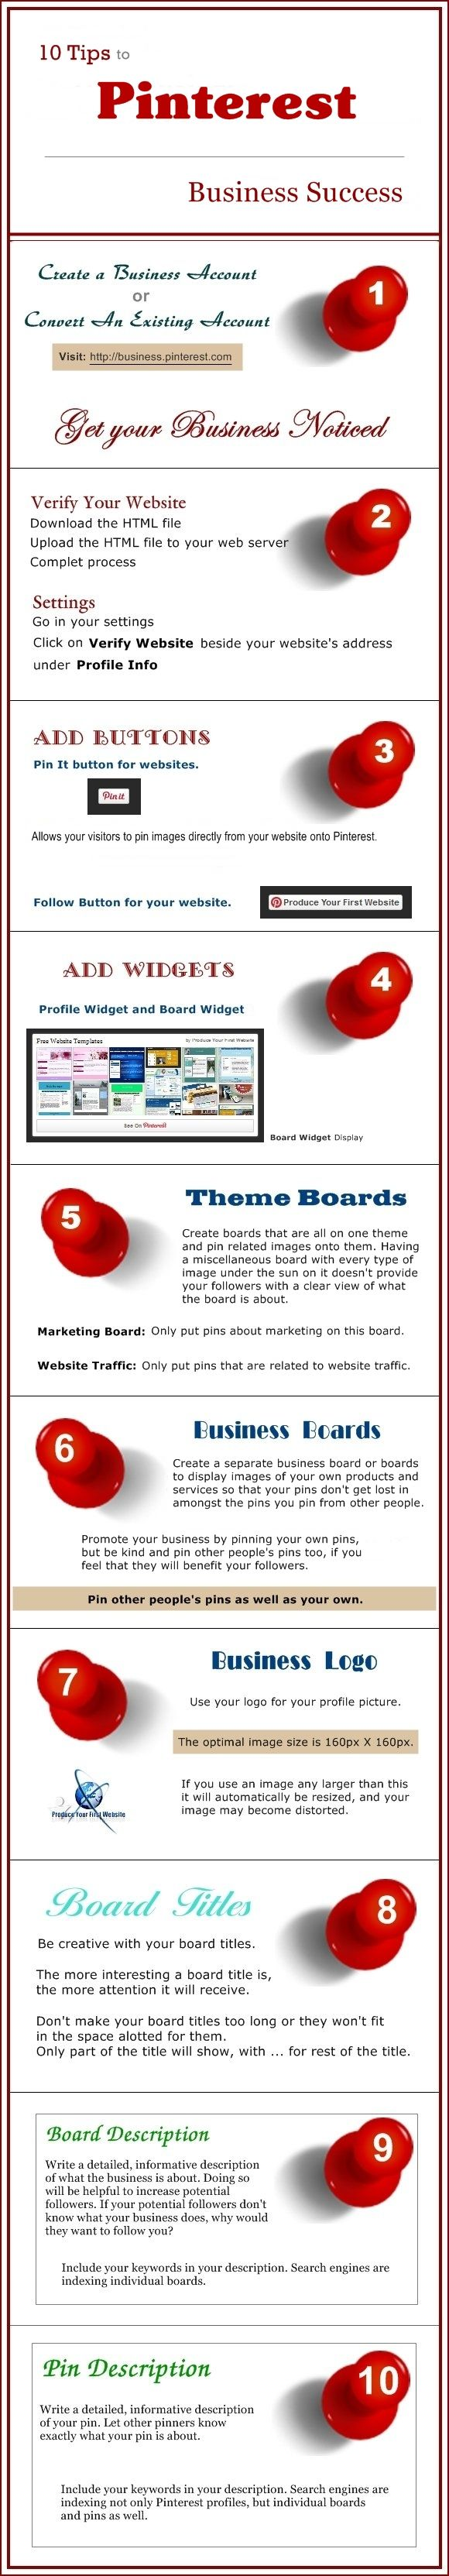 10 tips to #Pinterest business success #Infographic